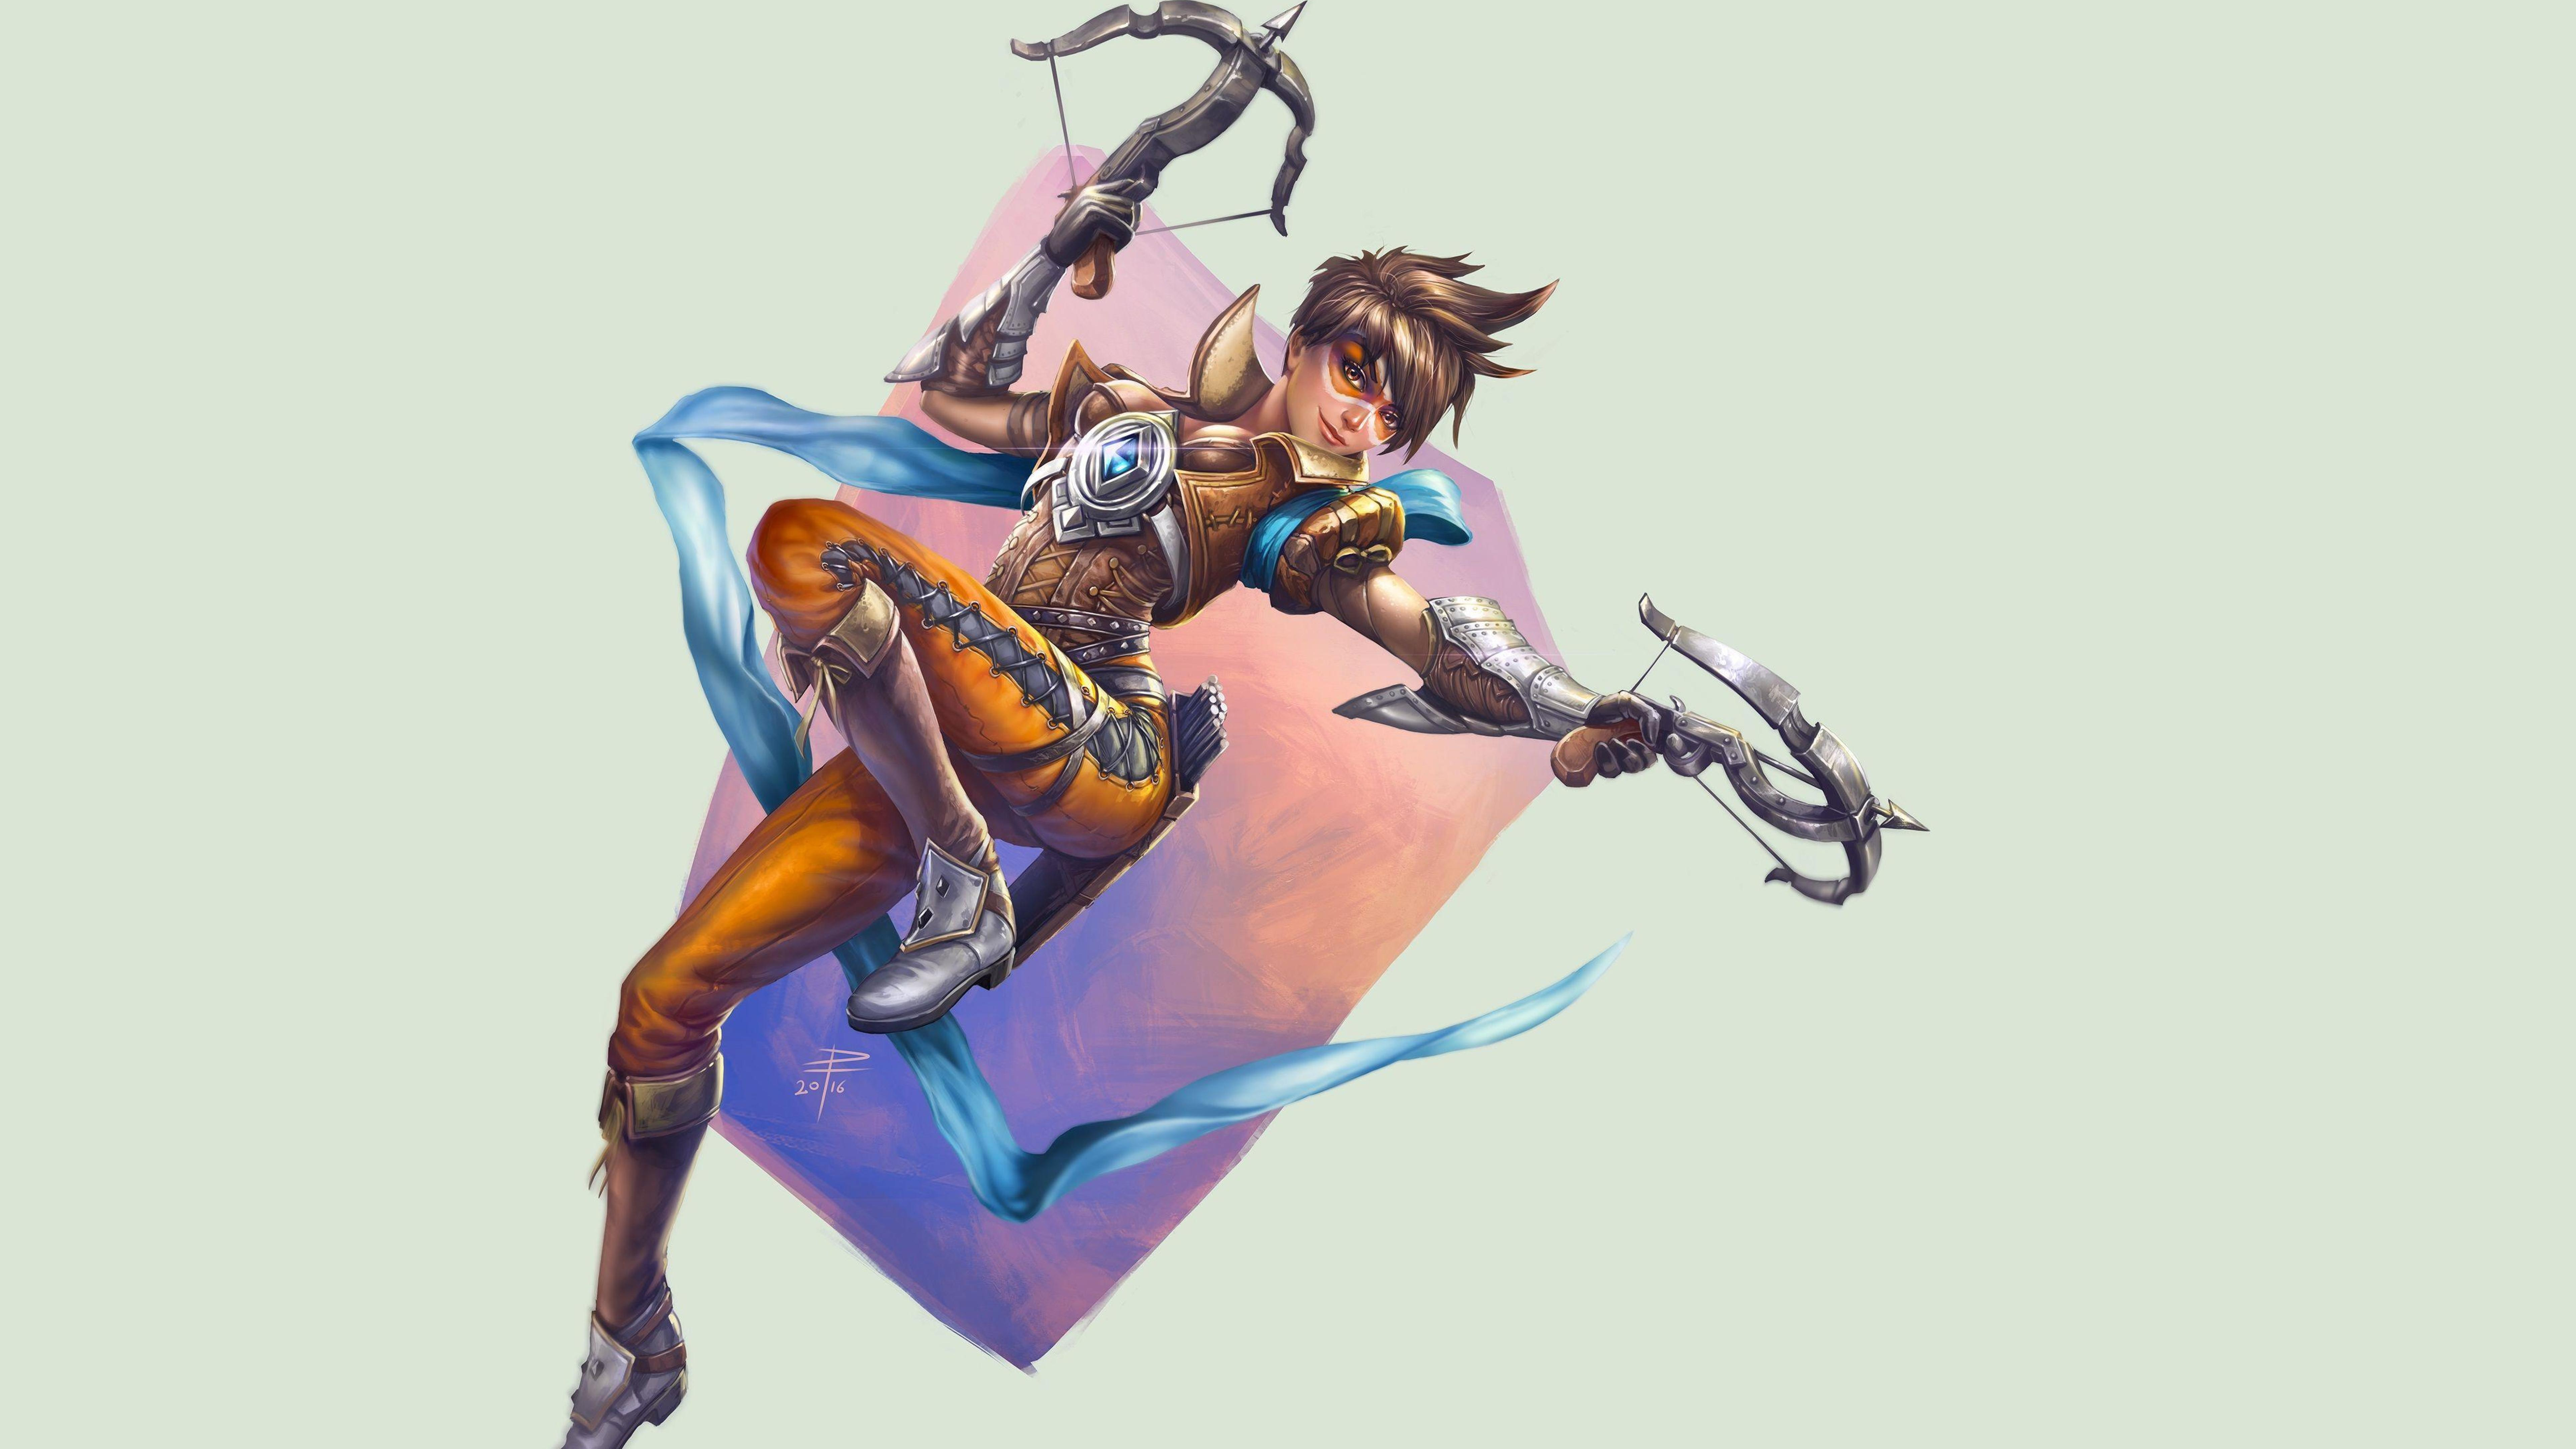 Dual Monitor Wallpaper Overwatch: Download Tracer Overwatch 1920x1080 Resolution, HD 4K